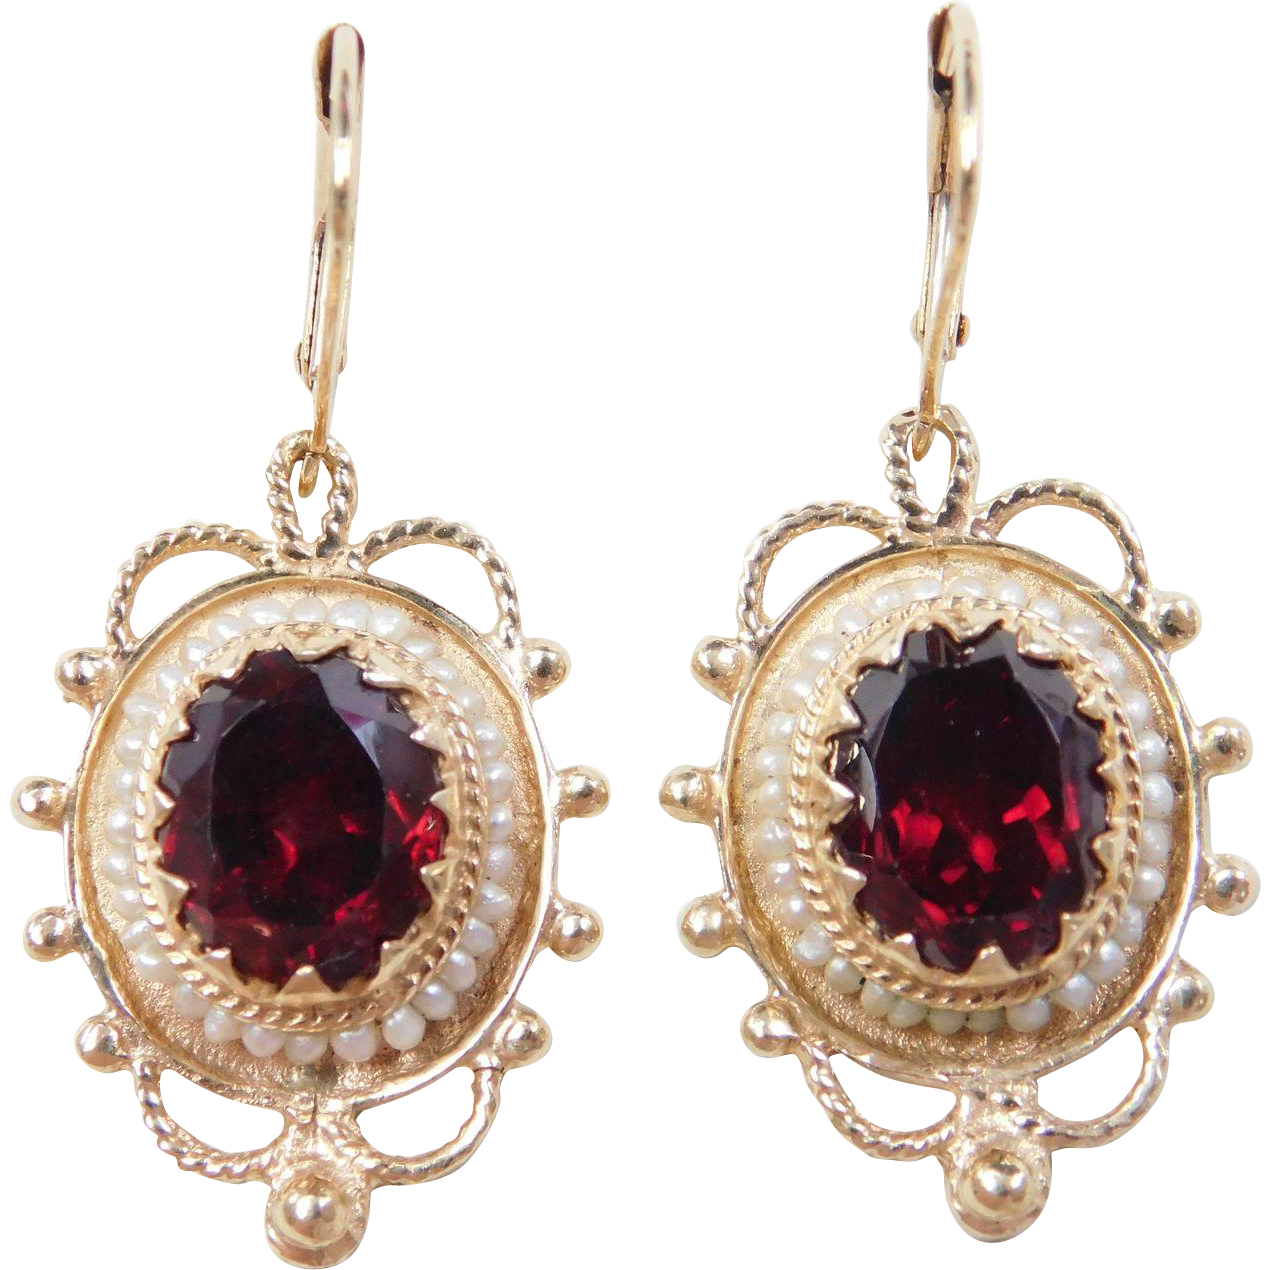 Item Vintage 14k Gold Victorian Revival Garnet And Seed Pearl Dangle Earrings Composition Yellow Acid Tested Gem 5 60 Ctw